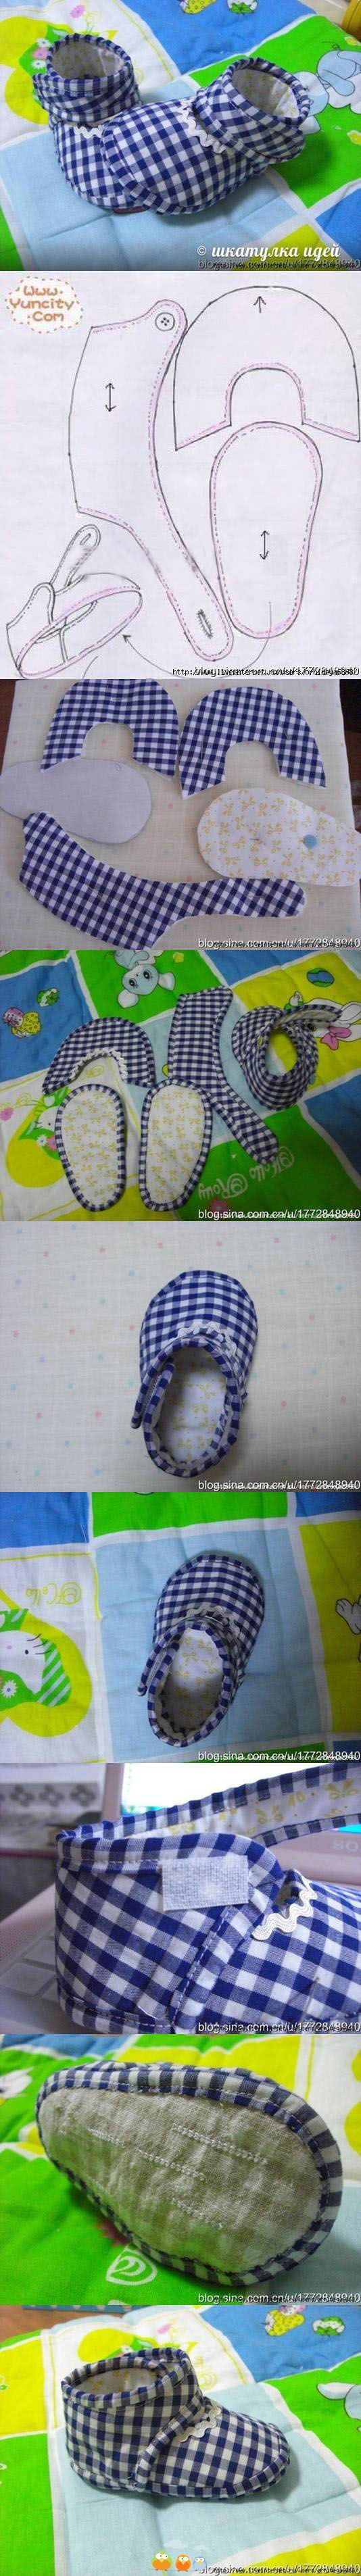 How to make soft baby shoes - vma.